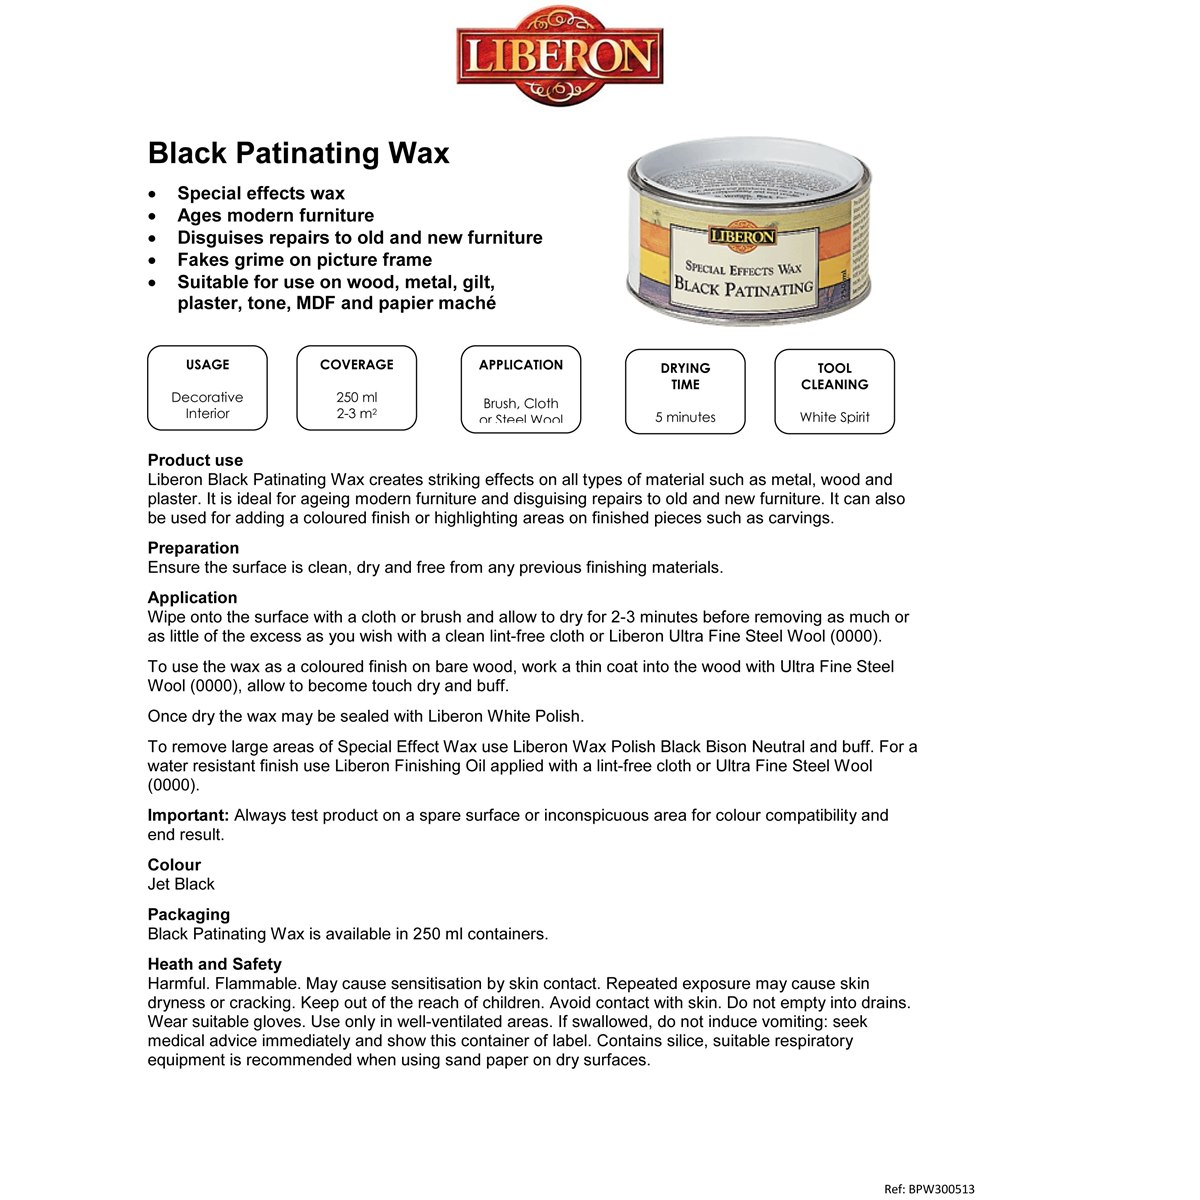 How to apply Liberon Special Effects Black Patinating Wax